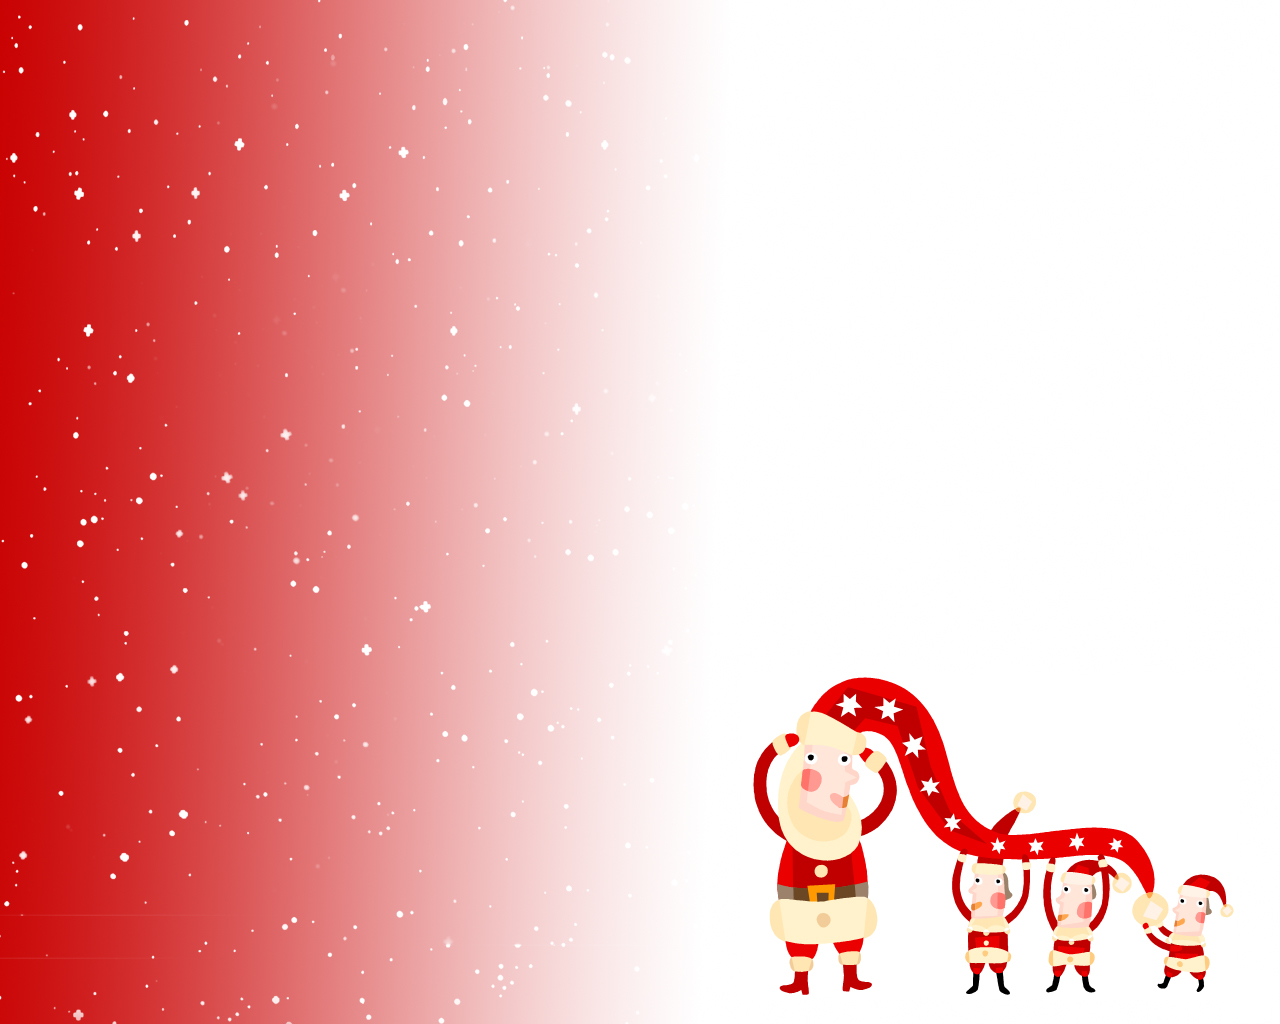 Cute Santa Claus Doll Christmas Wallpaper Imag 11378 1280x1024